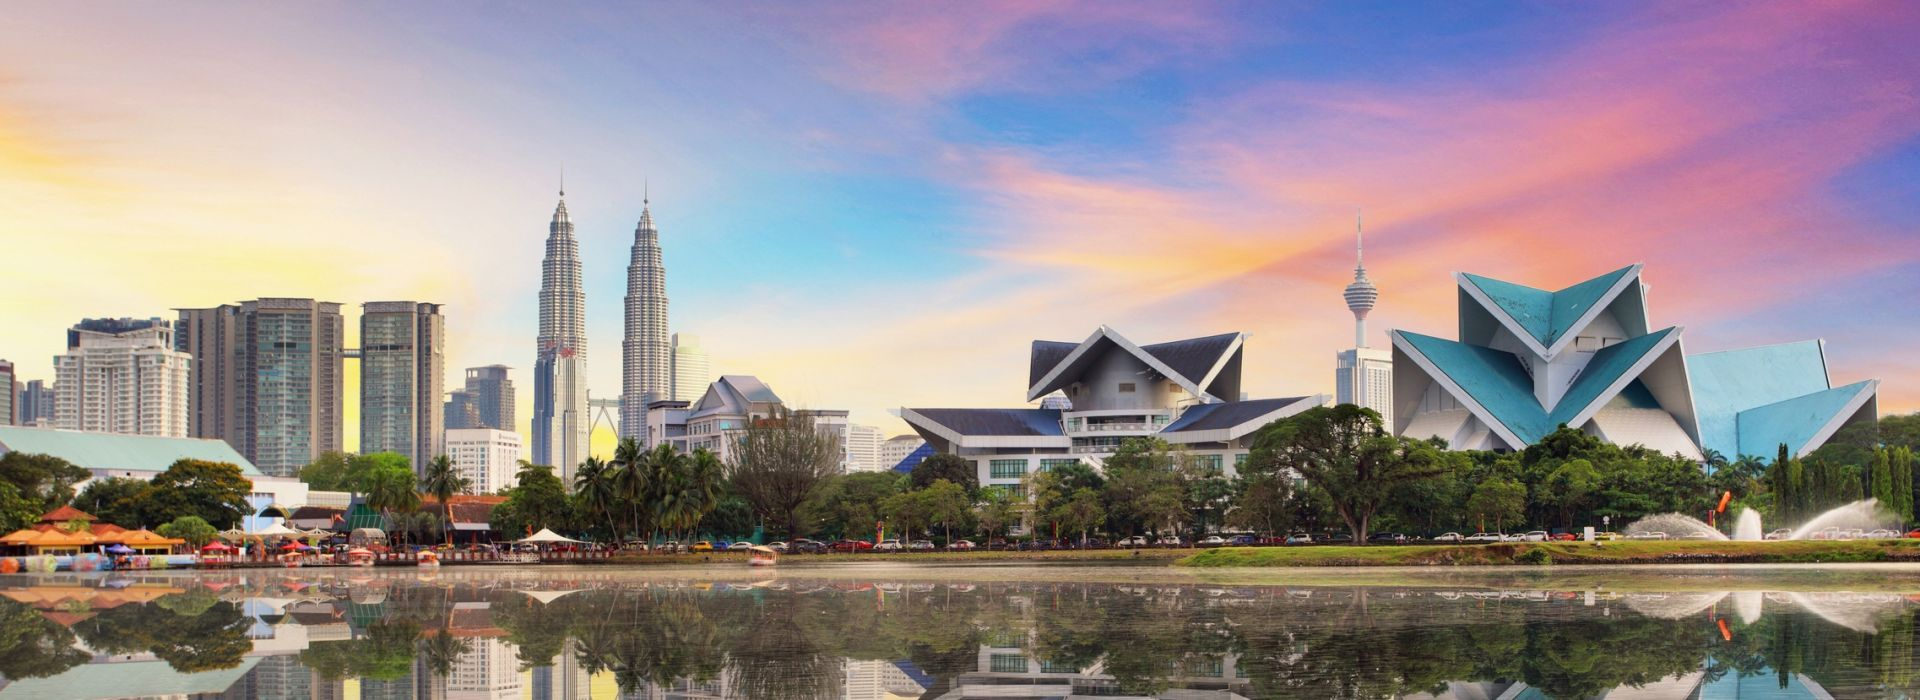 Cultural, religious and historic sites Tours in Kuala Lumpur